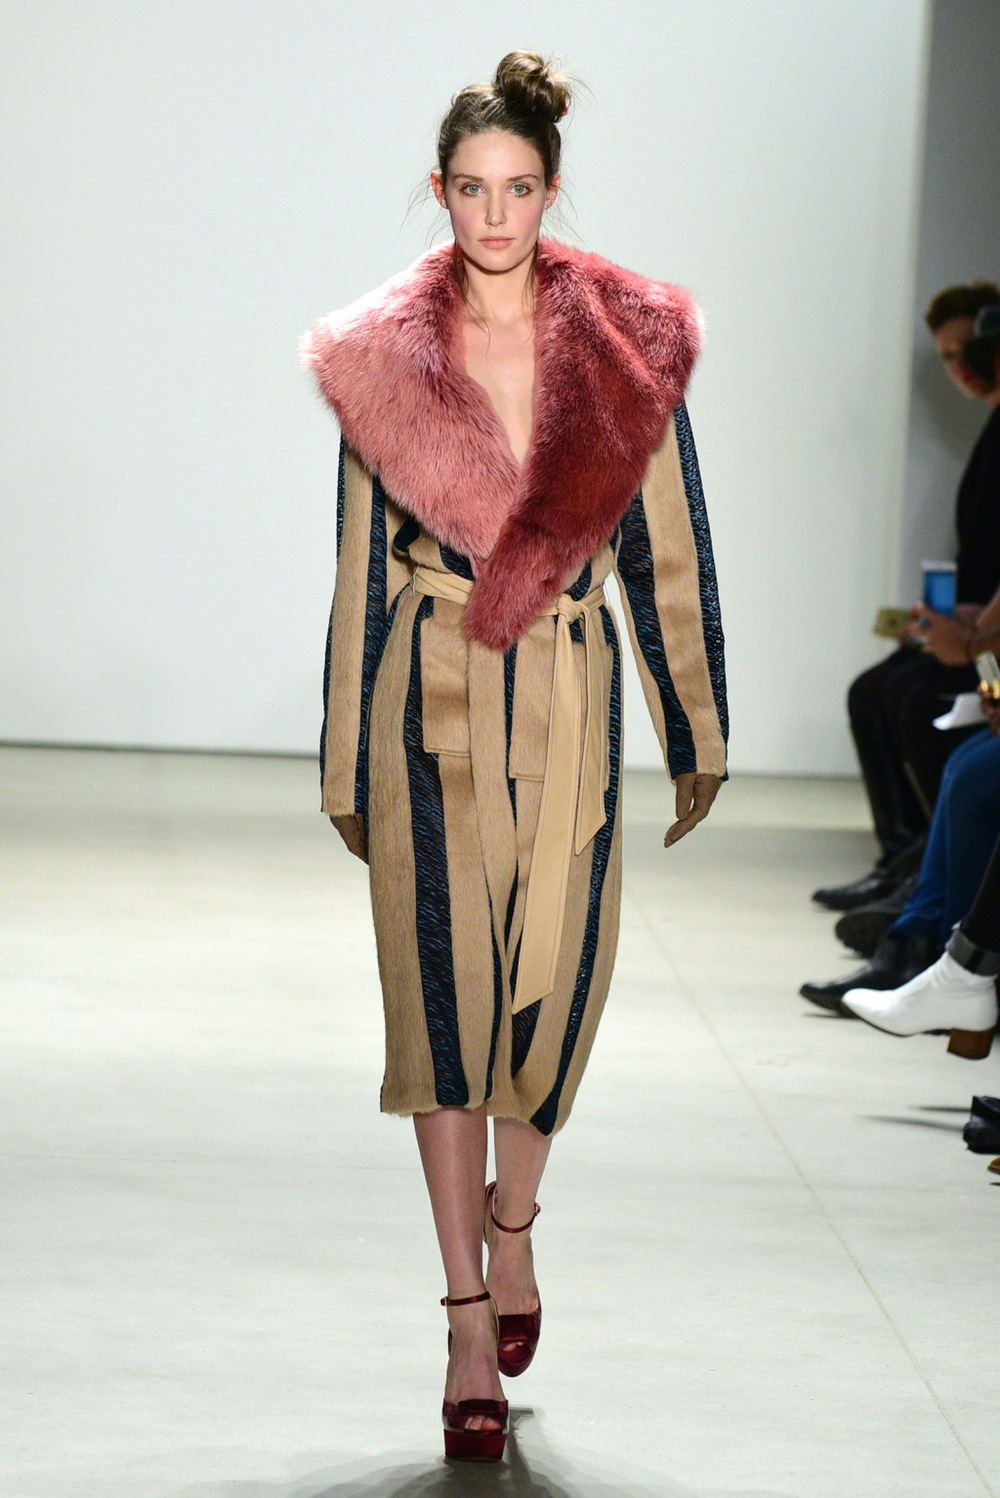 NYFW Georgine Fashion Show Fall Winter 2016 Louboutins & Love Fashion Blog Esther Santer NYC Street Style Runway Model Collection Skirt Beauty Inspo Front Row Event Photo Details Hair Dress Gown Beautiful Pretty Celebrities Stunning Gorgeous Sheer Fur.jpg